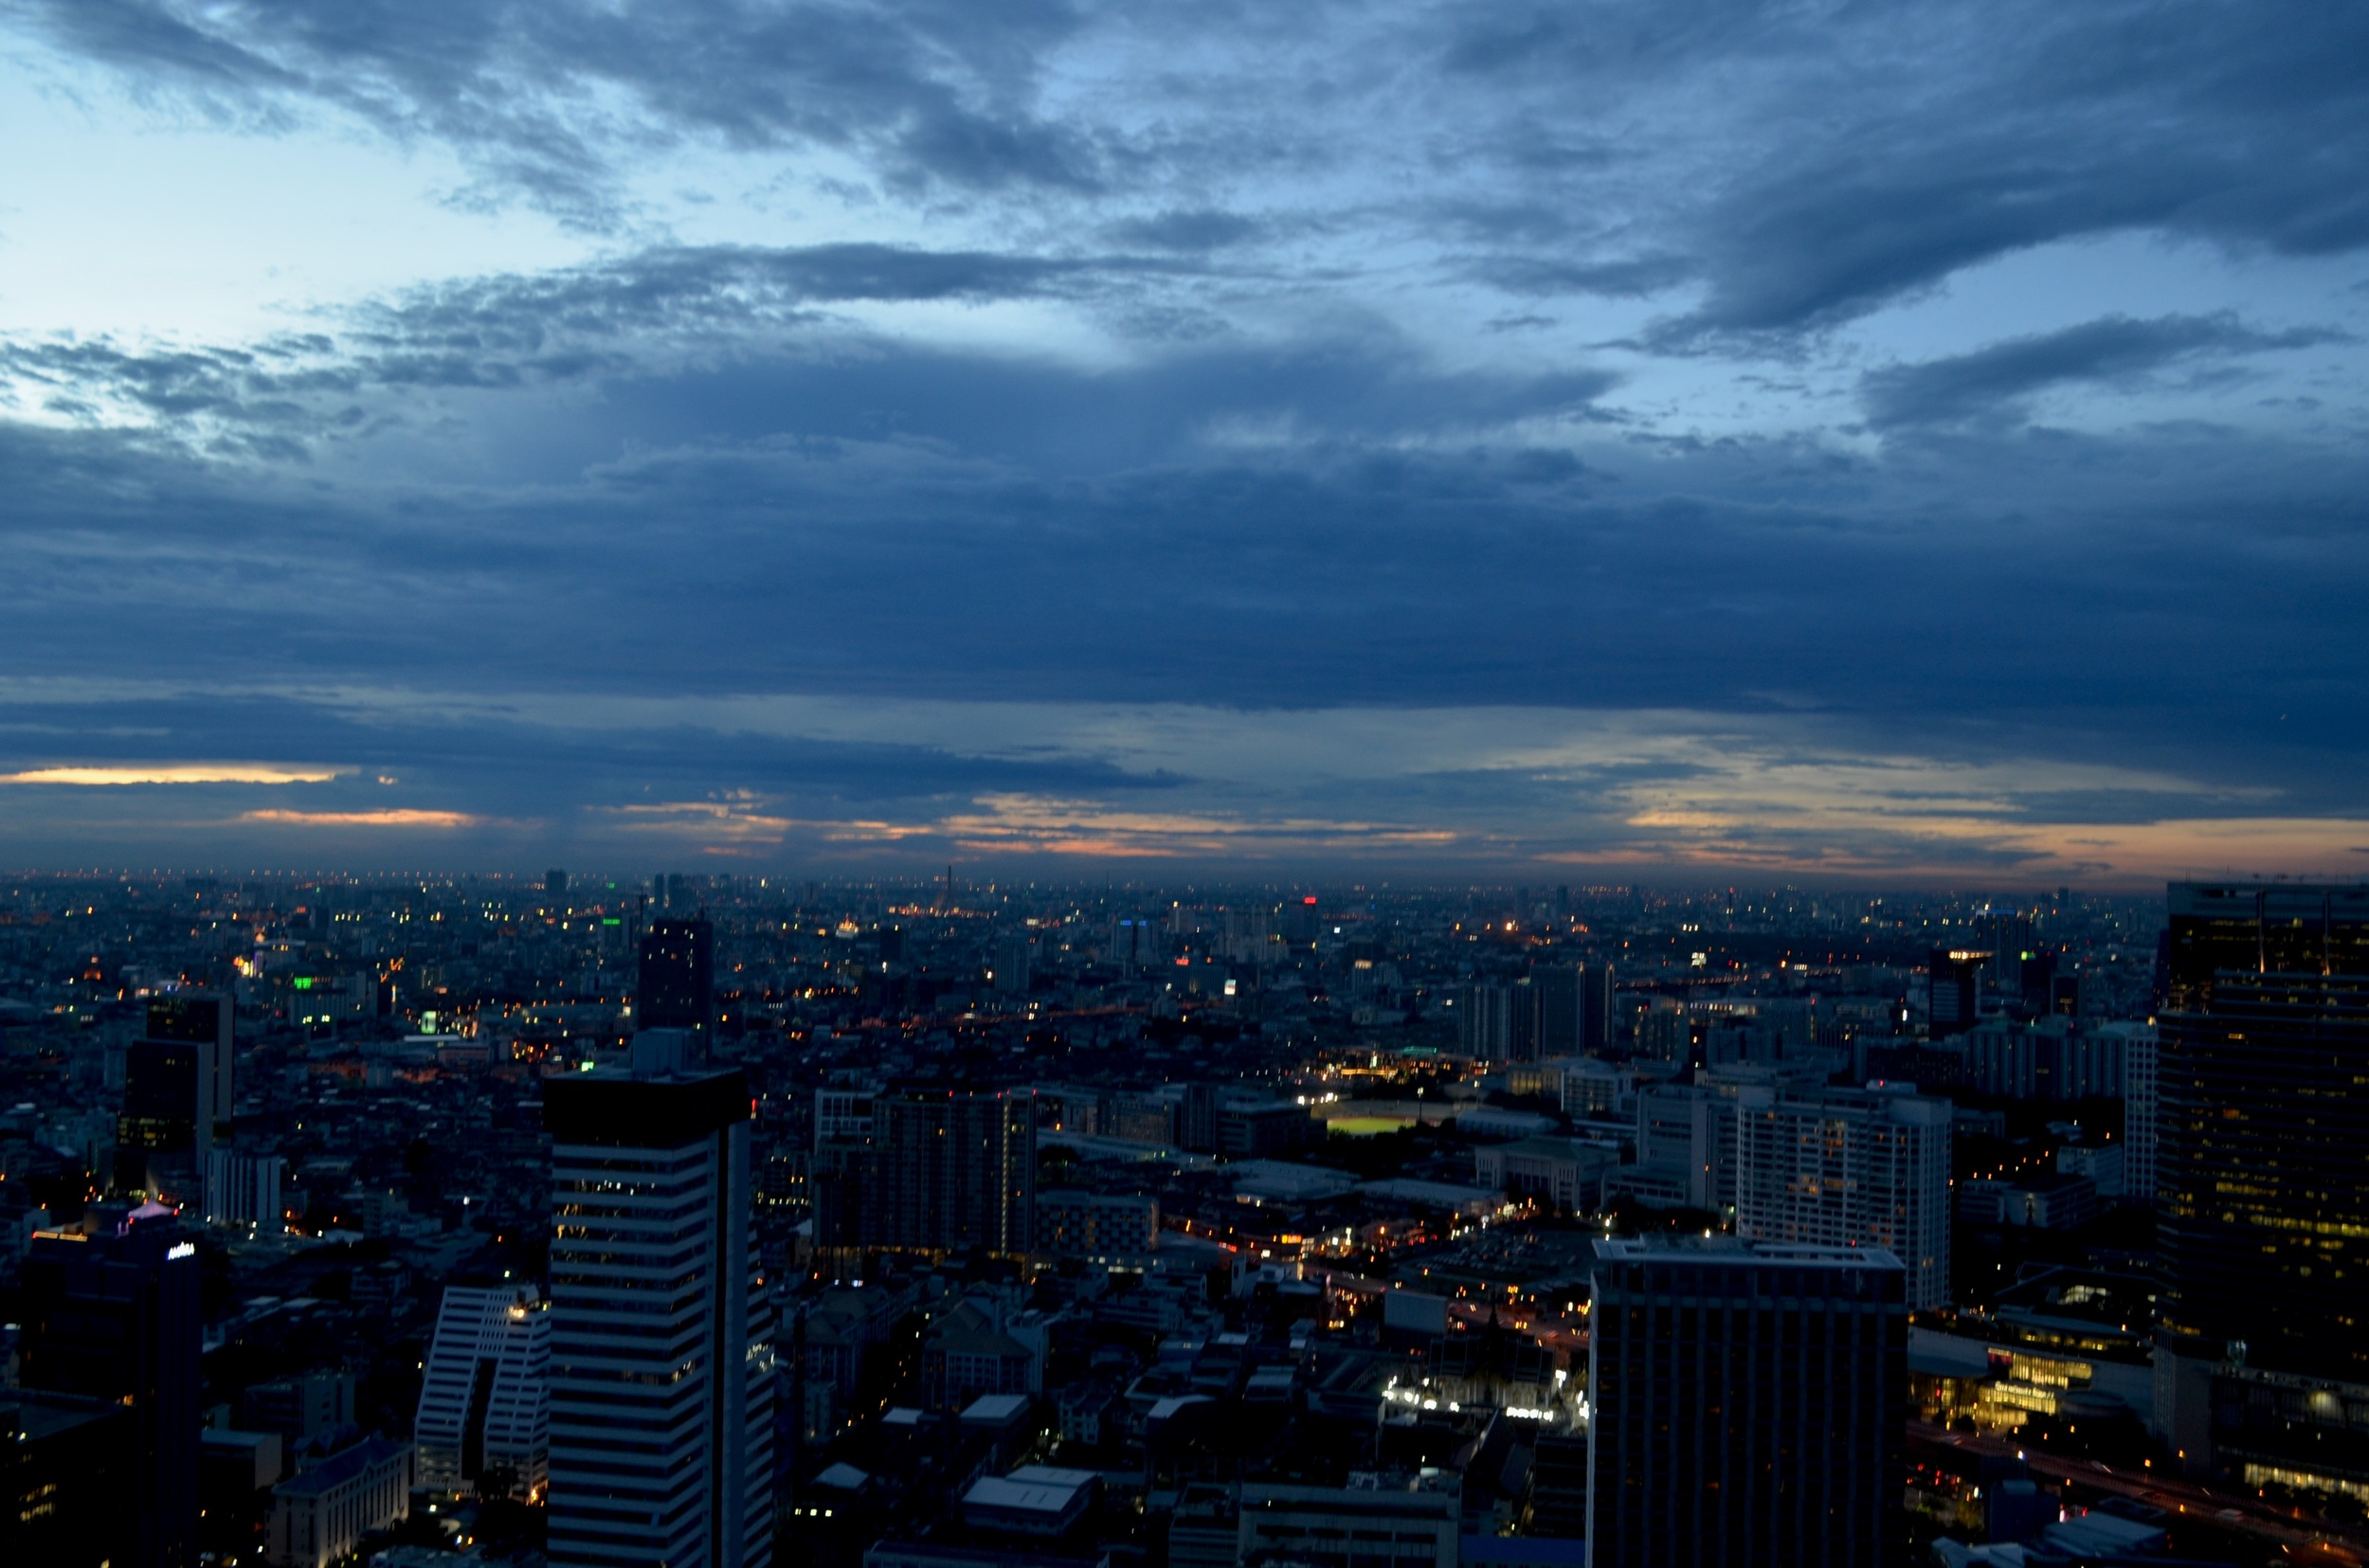 If I had let fear stop me, I would have never gazed across the Bangkok skyline as the sun set.